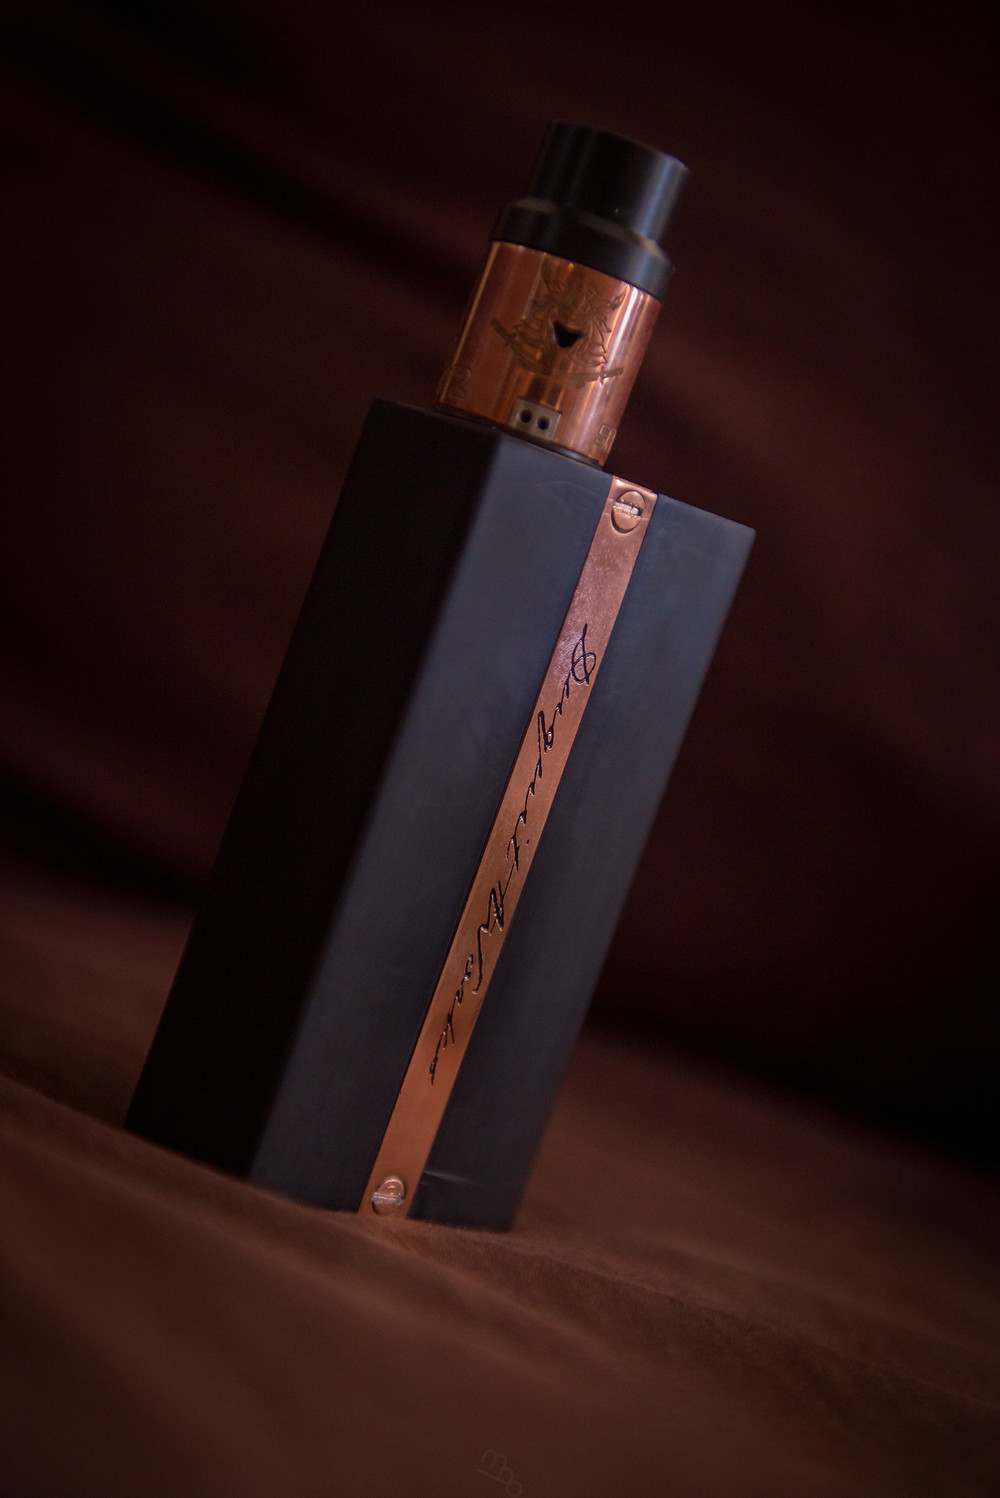 Duquit Cinco with Samurai Competition V2 Copper